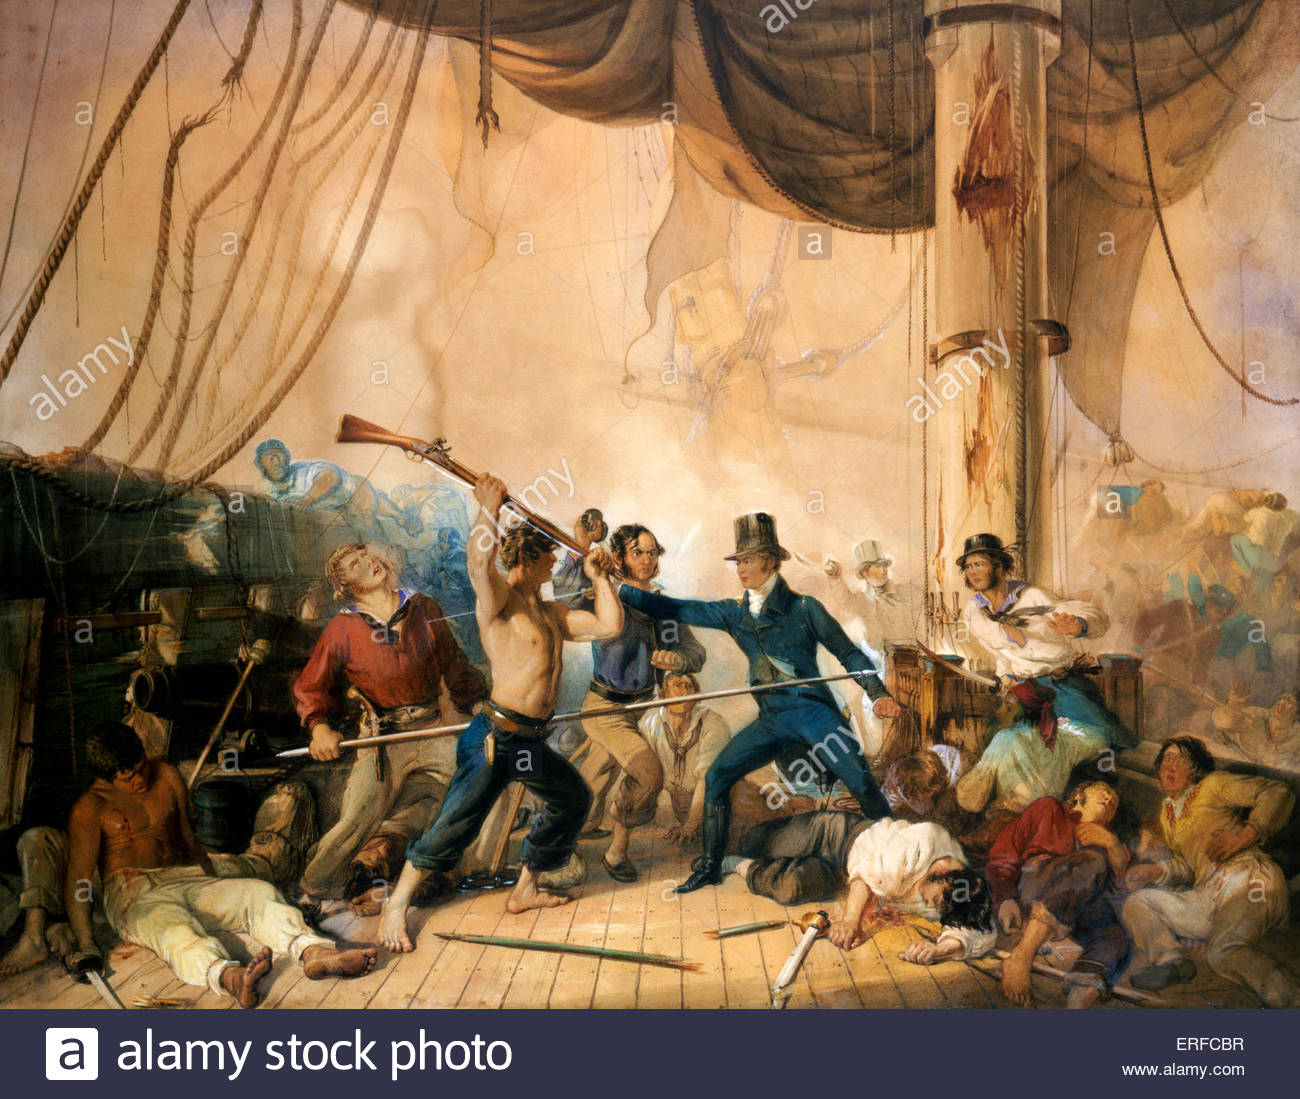 The Melee on the deck of the Chesapeake, 1813. Anonymous artist. Oil painting. - Stock Image